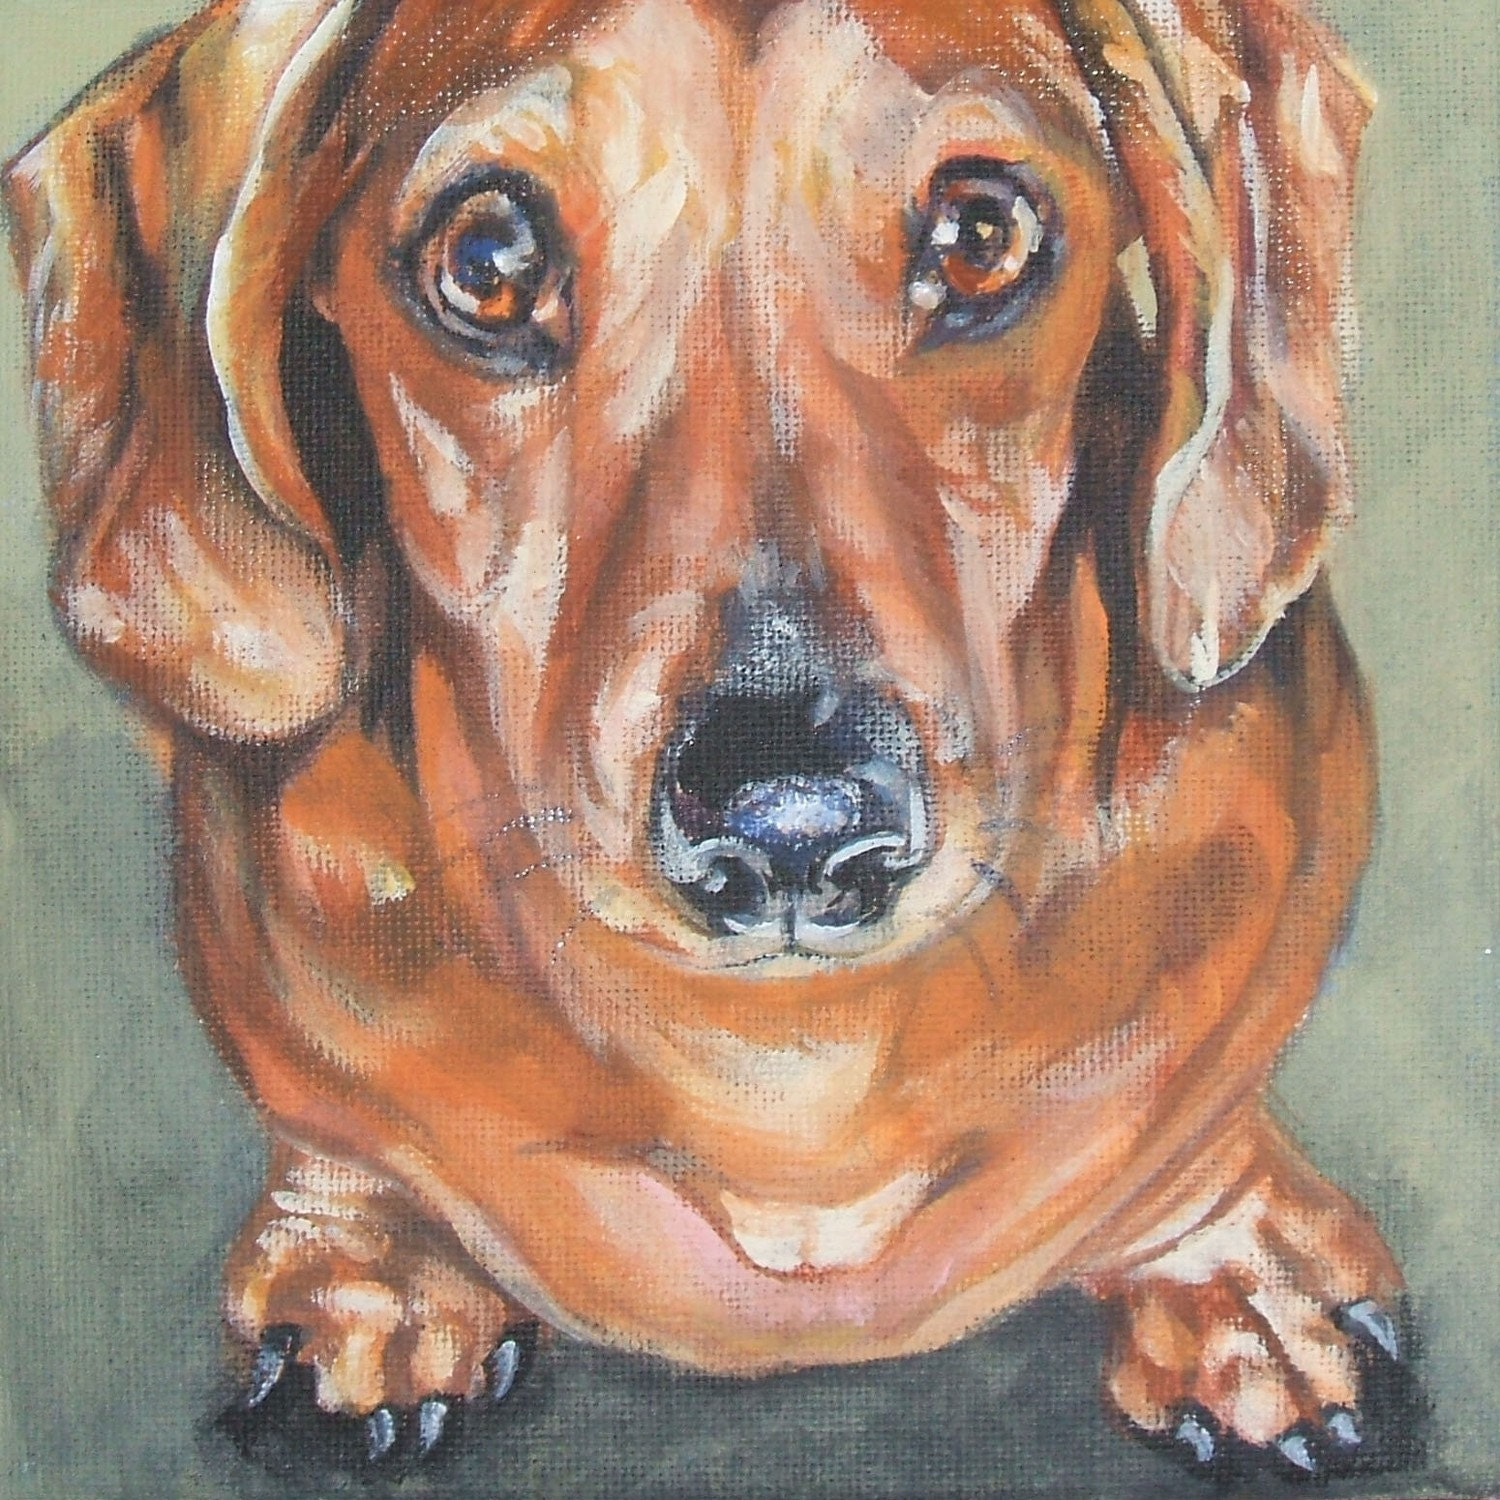 Dachshund dog art canvas print of la shepard painting 12x12 for Dog painting artist